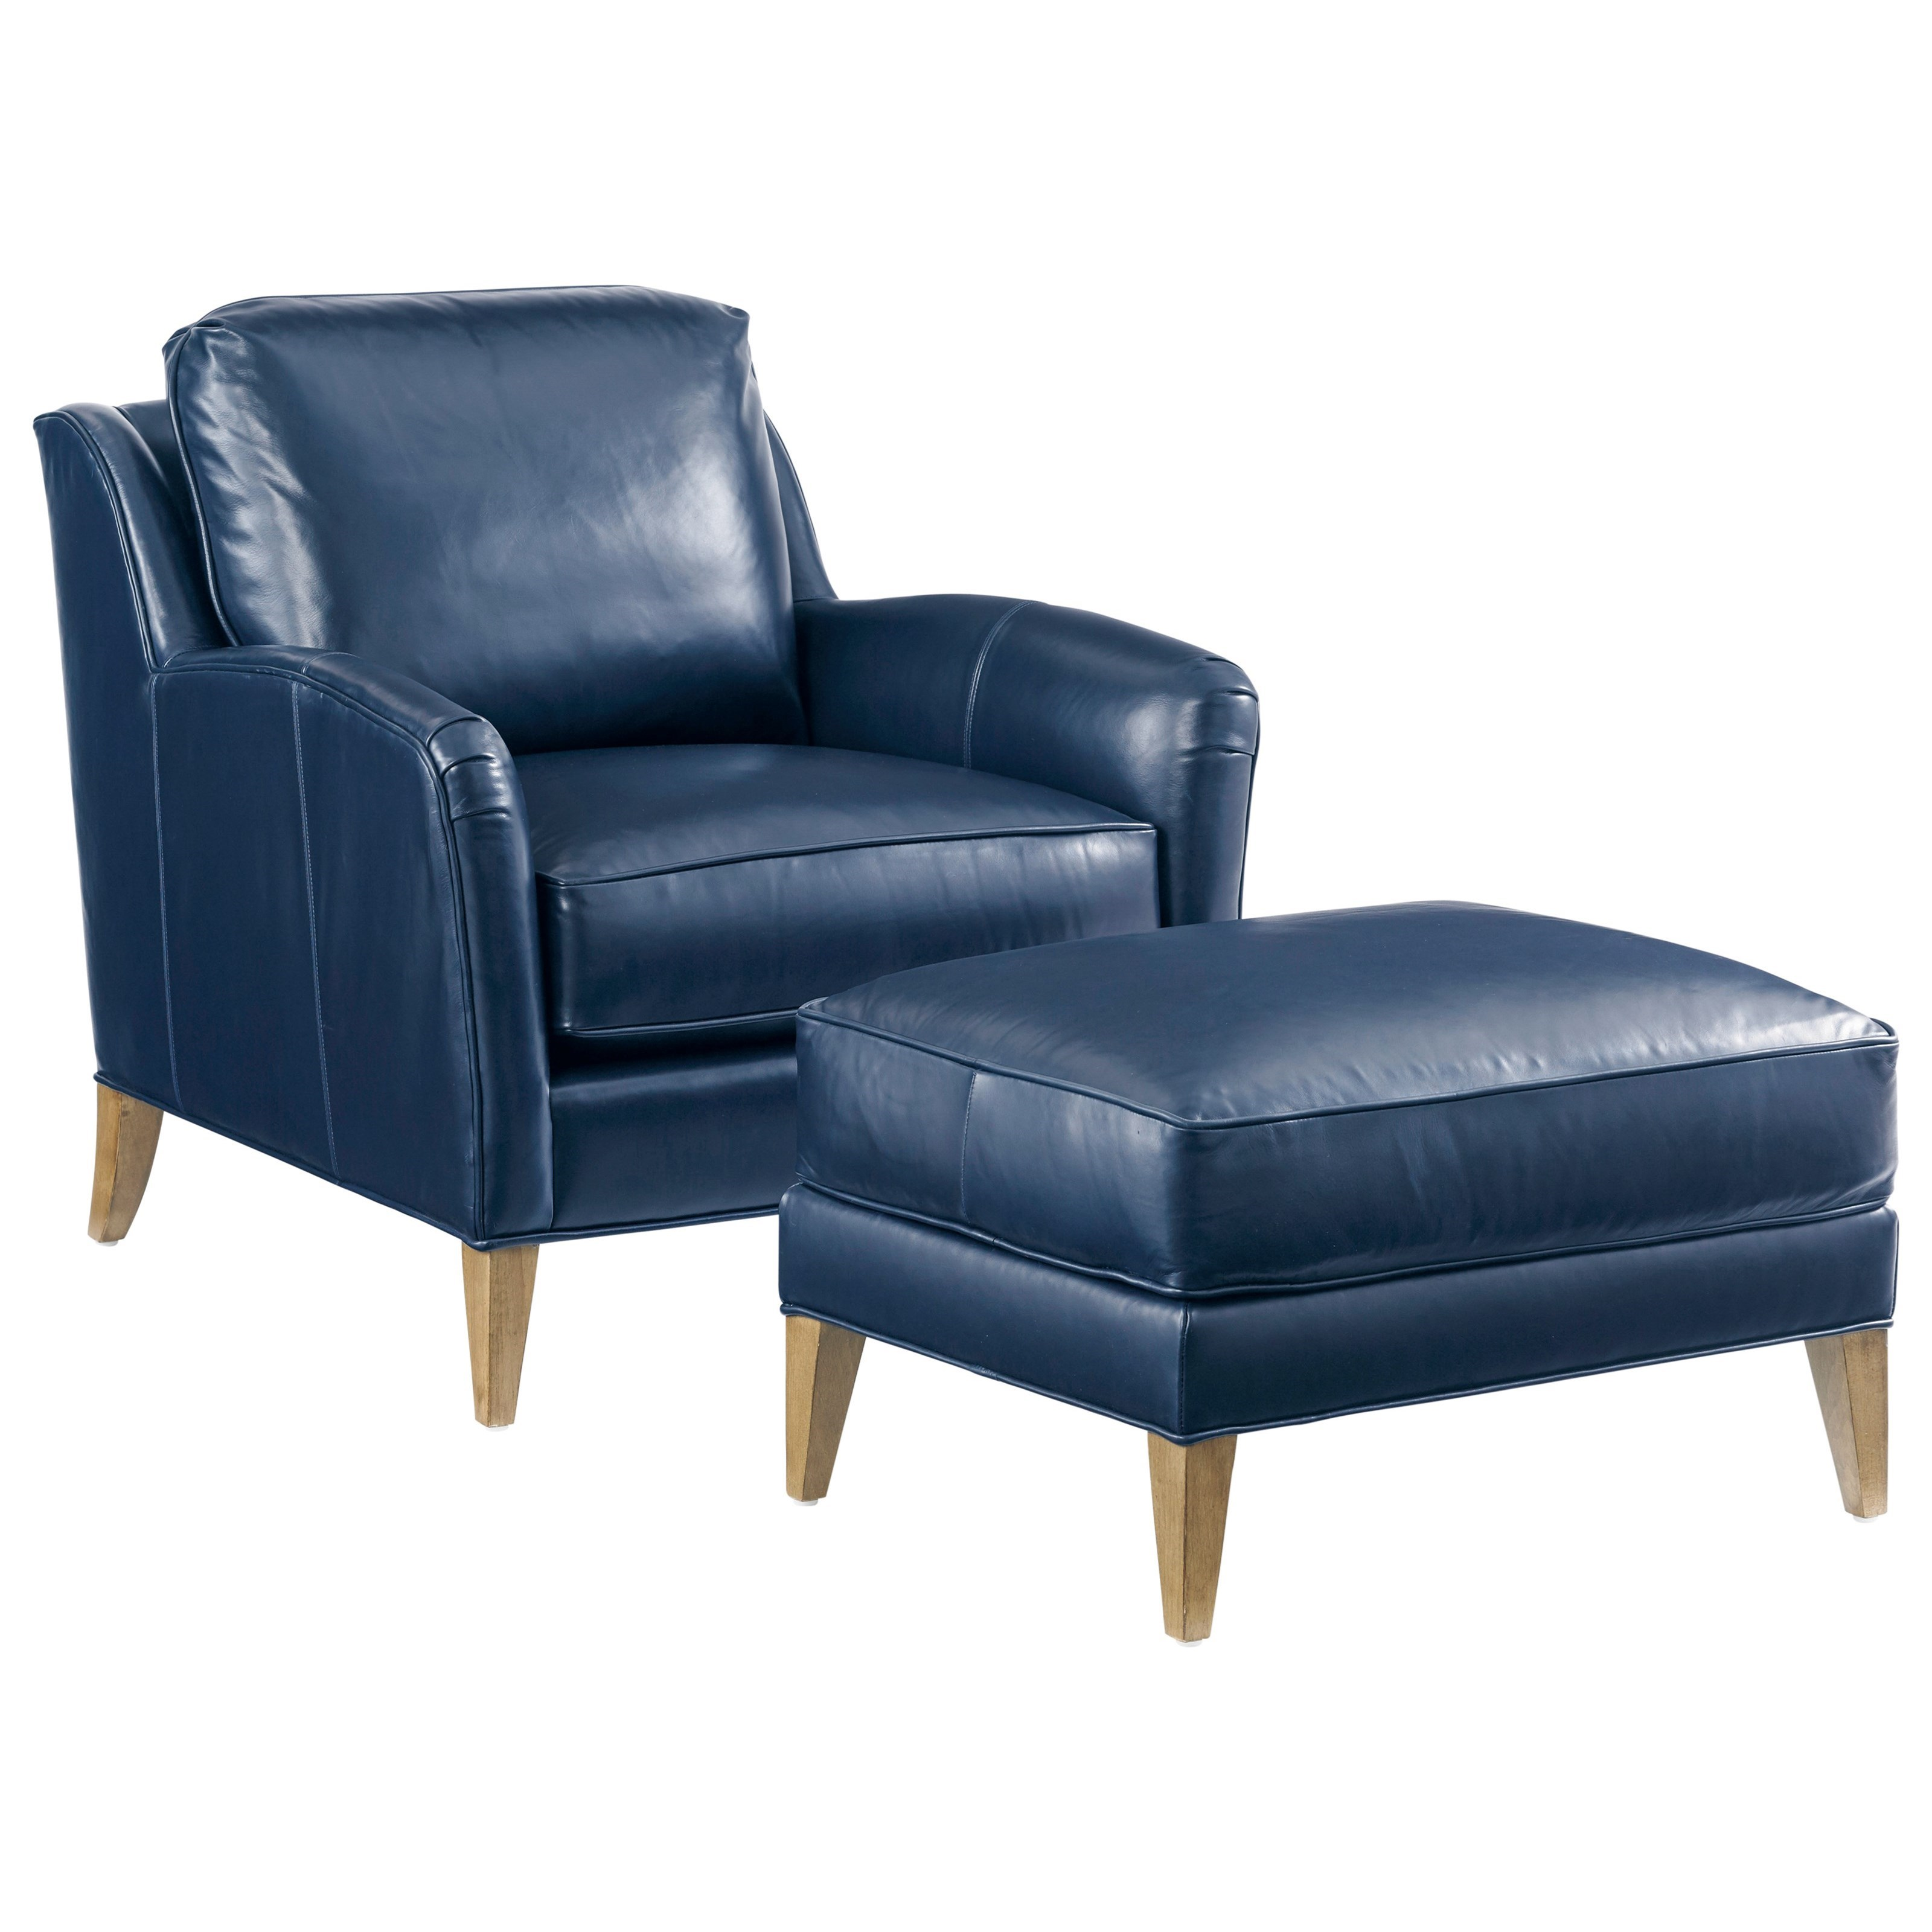 Twin Palms Coconut Grove Chair and Ottoman Set by Tommy Bahama Home at Baer's Furniture